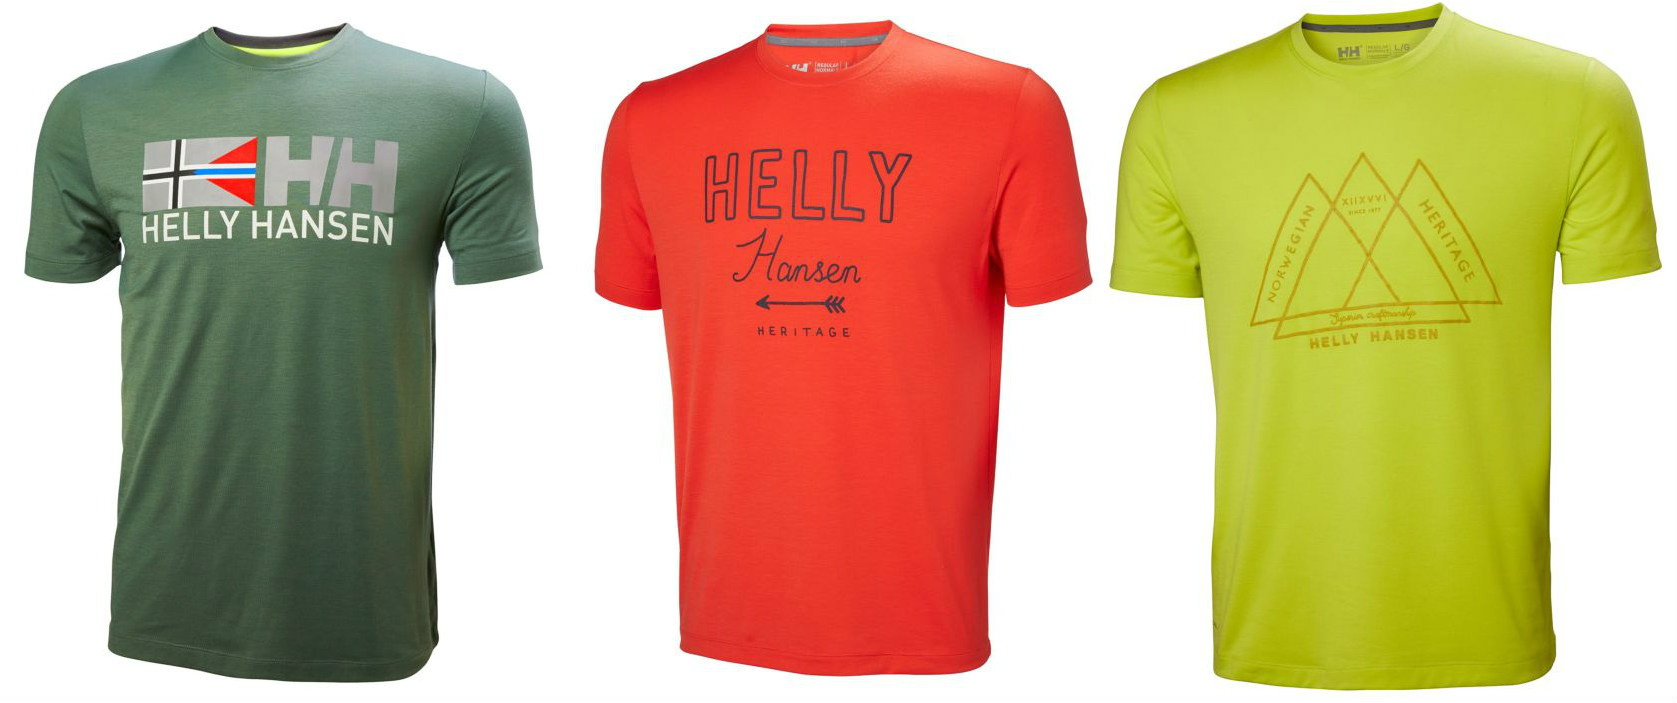 Review of Rune and Skog T-shirt by Helly Hansen